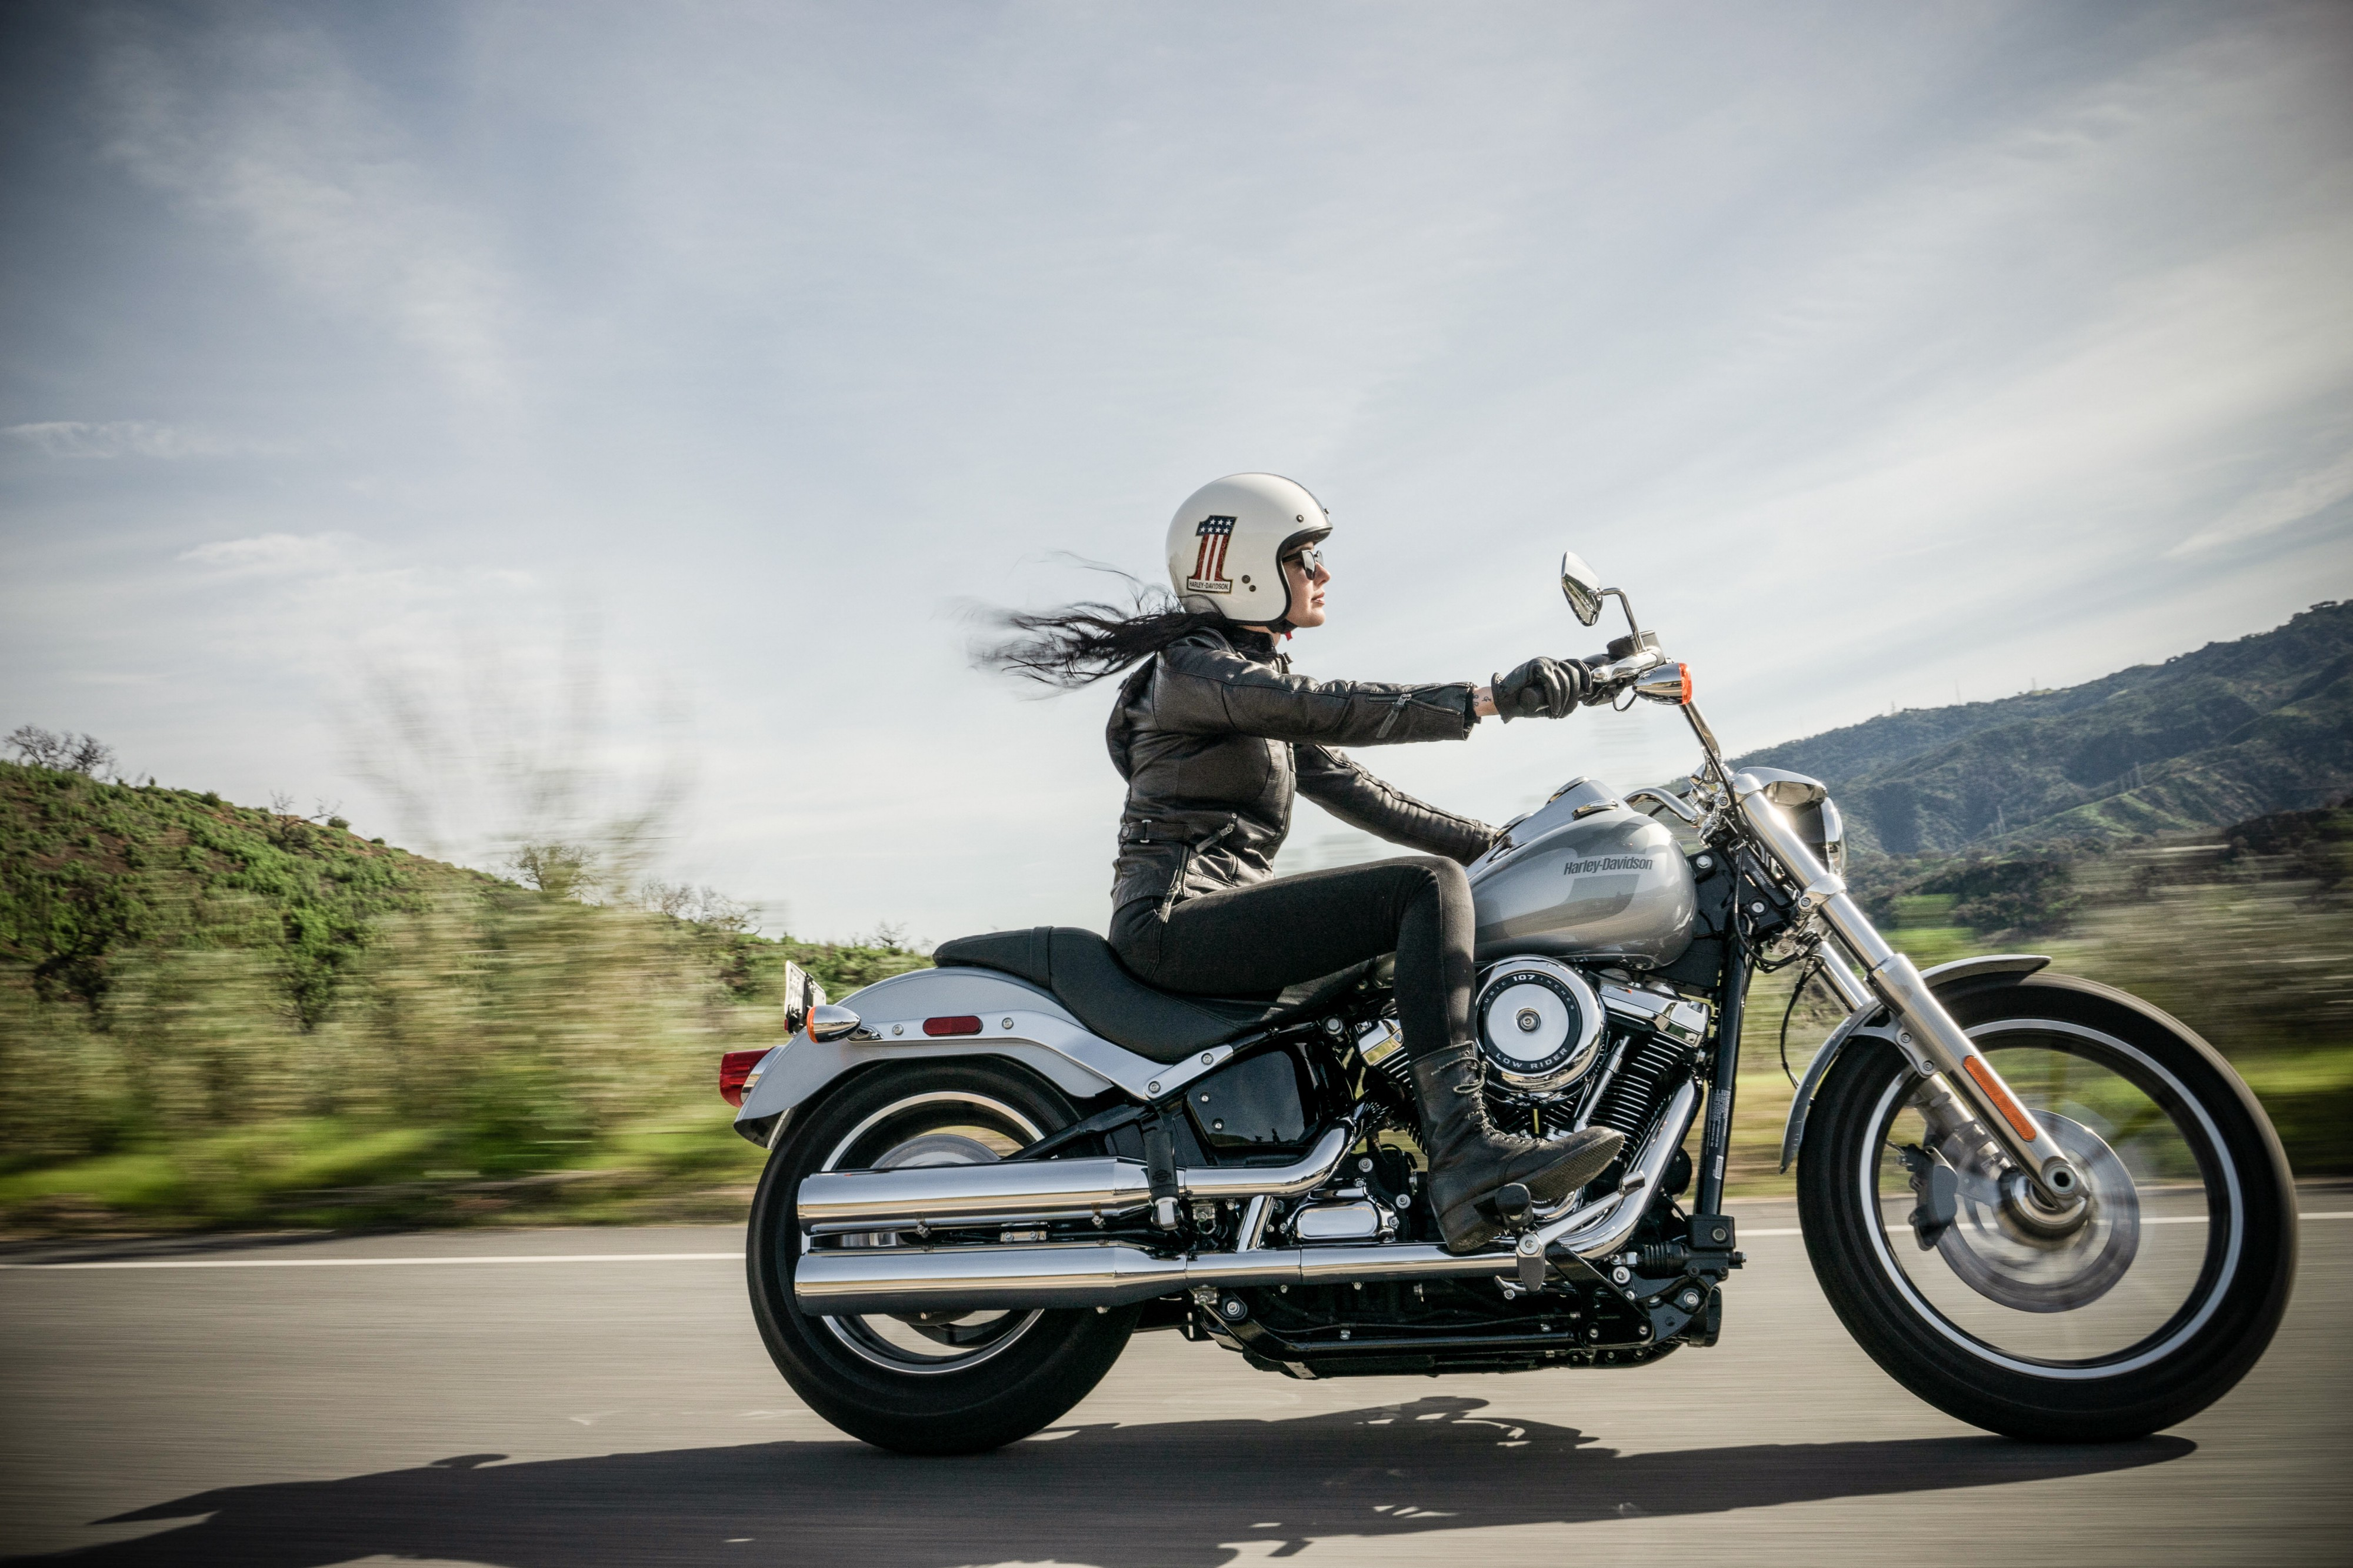 Harley-Davidson Motorcycle on the road